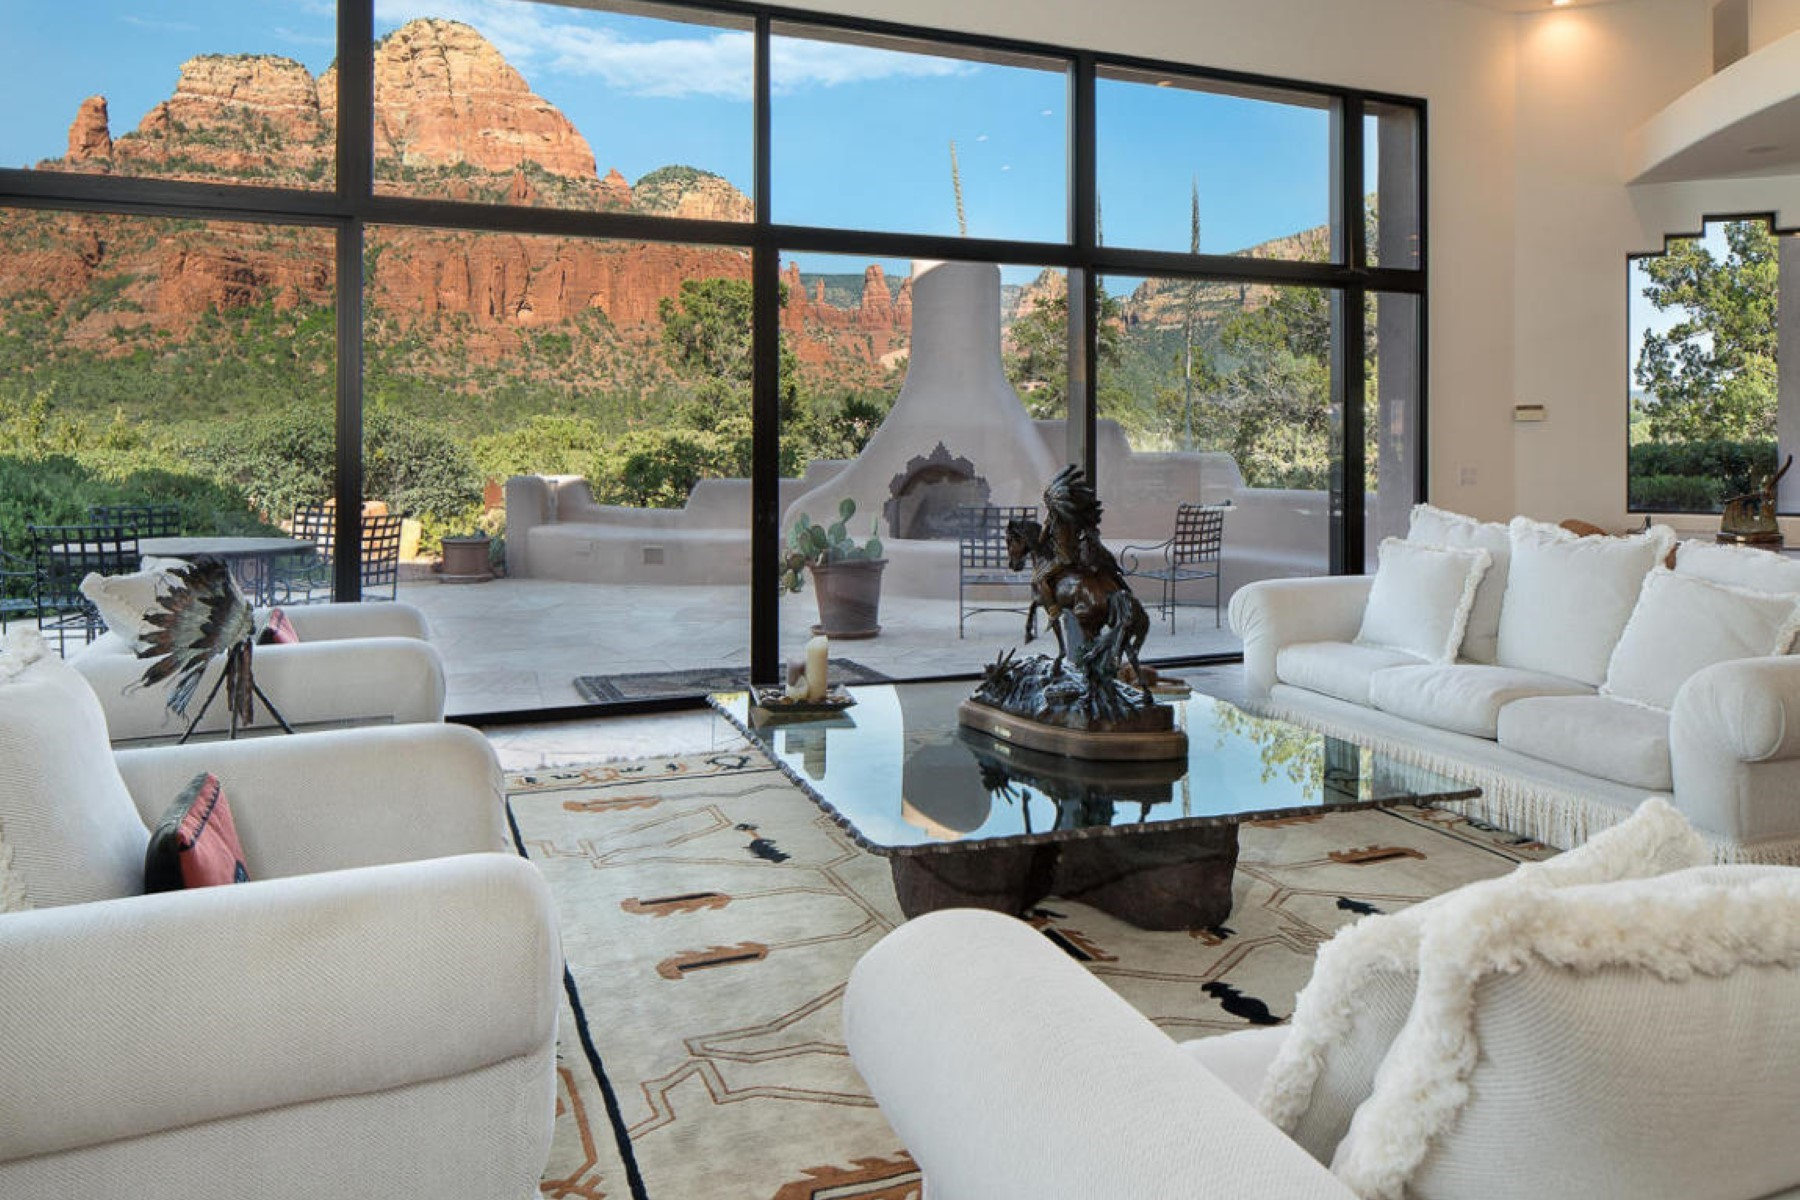 Maison unifamiliale pour l Vente à Elevated hilltop Santé Fe Hacienda in Sedona's most desirable neighborhoods. 814 W Chapel RD Sedona, Arizona 86336 États-Unis